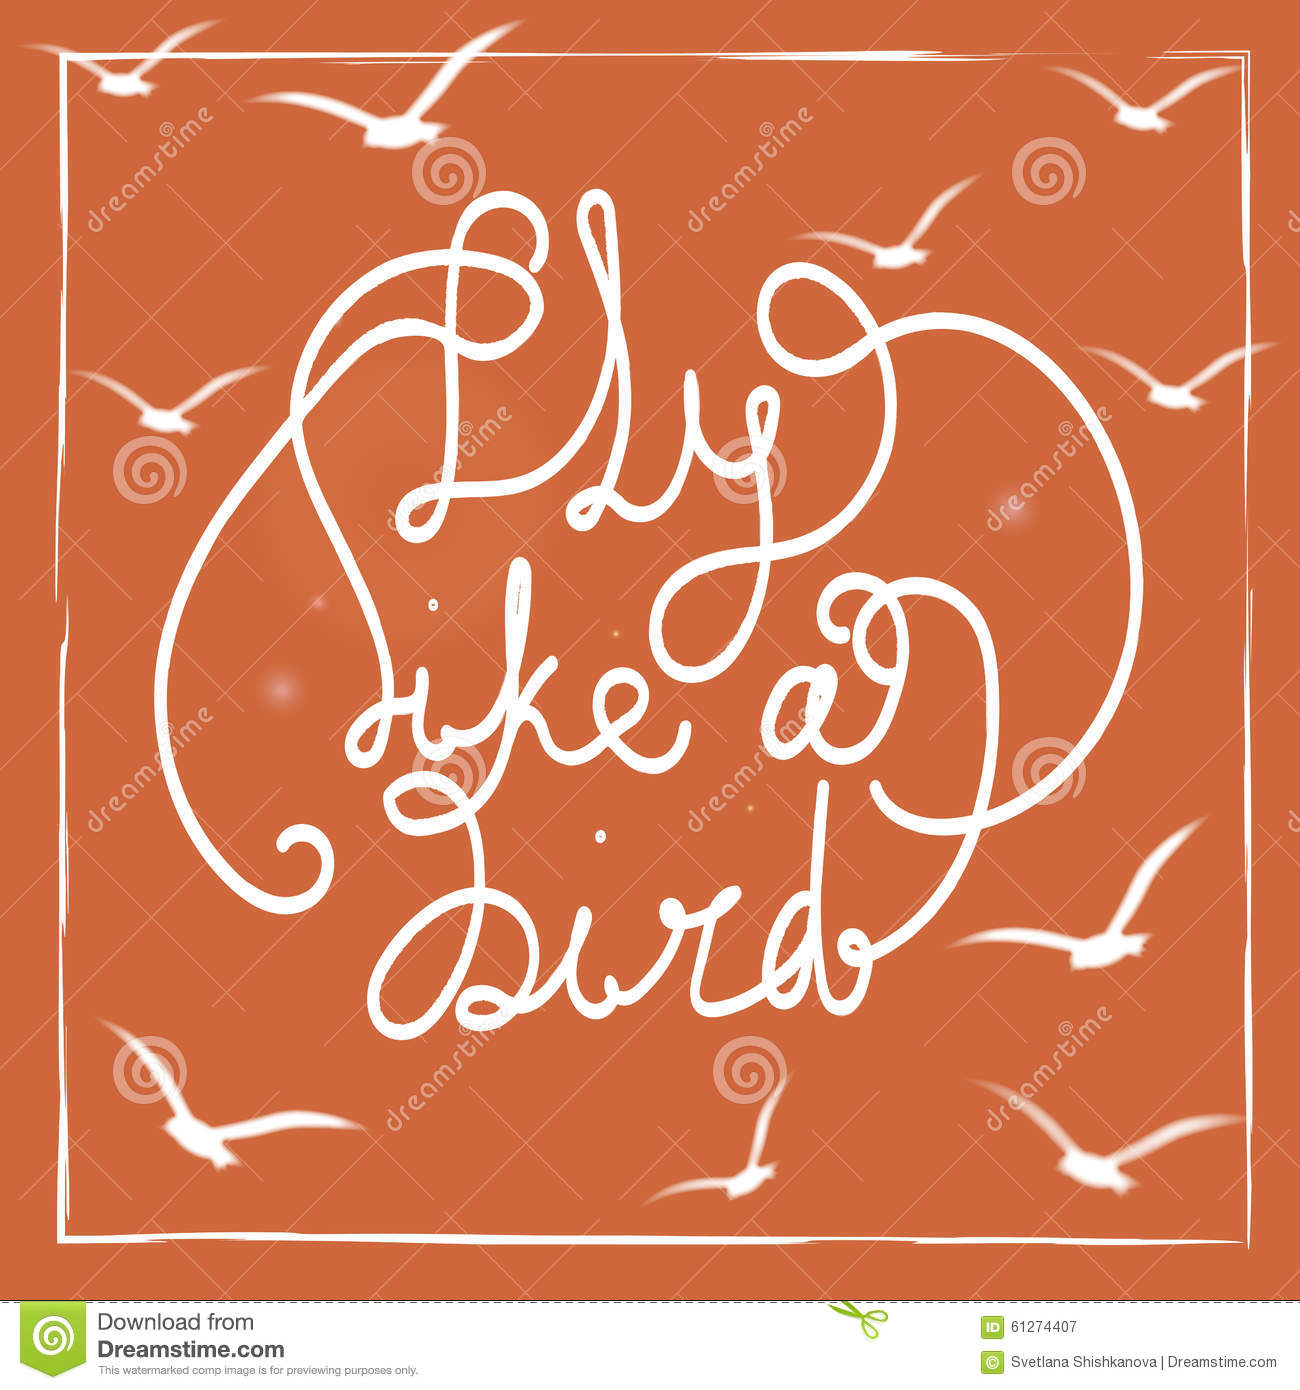 Fly Like A Bird Hand Drawn Lettering Quote On The Bright Orange